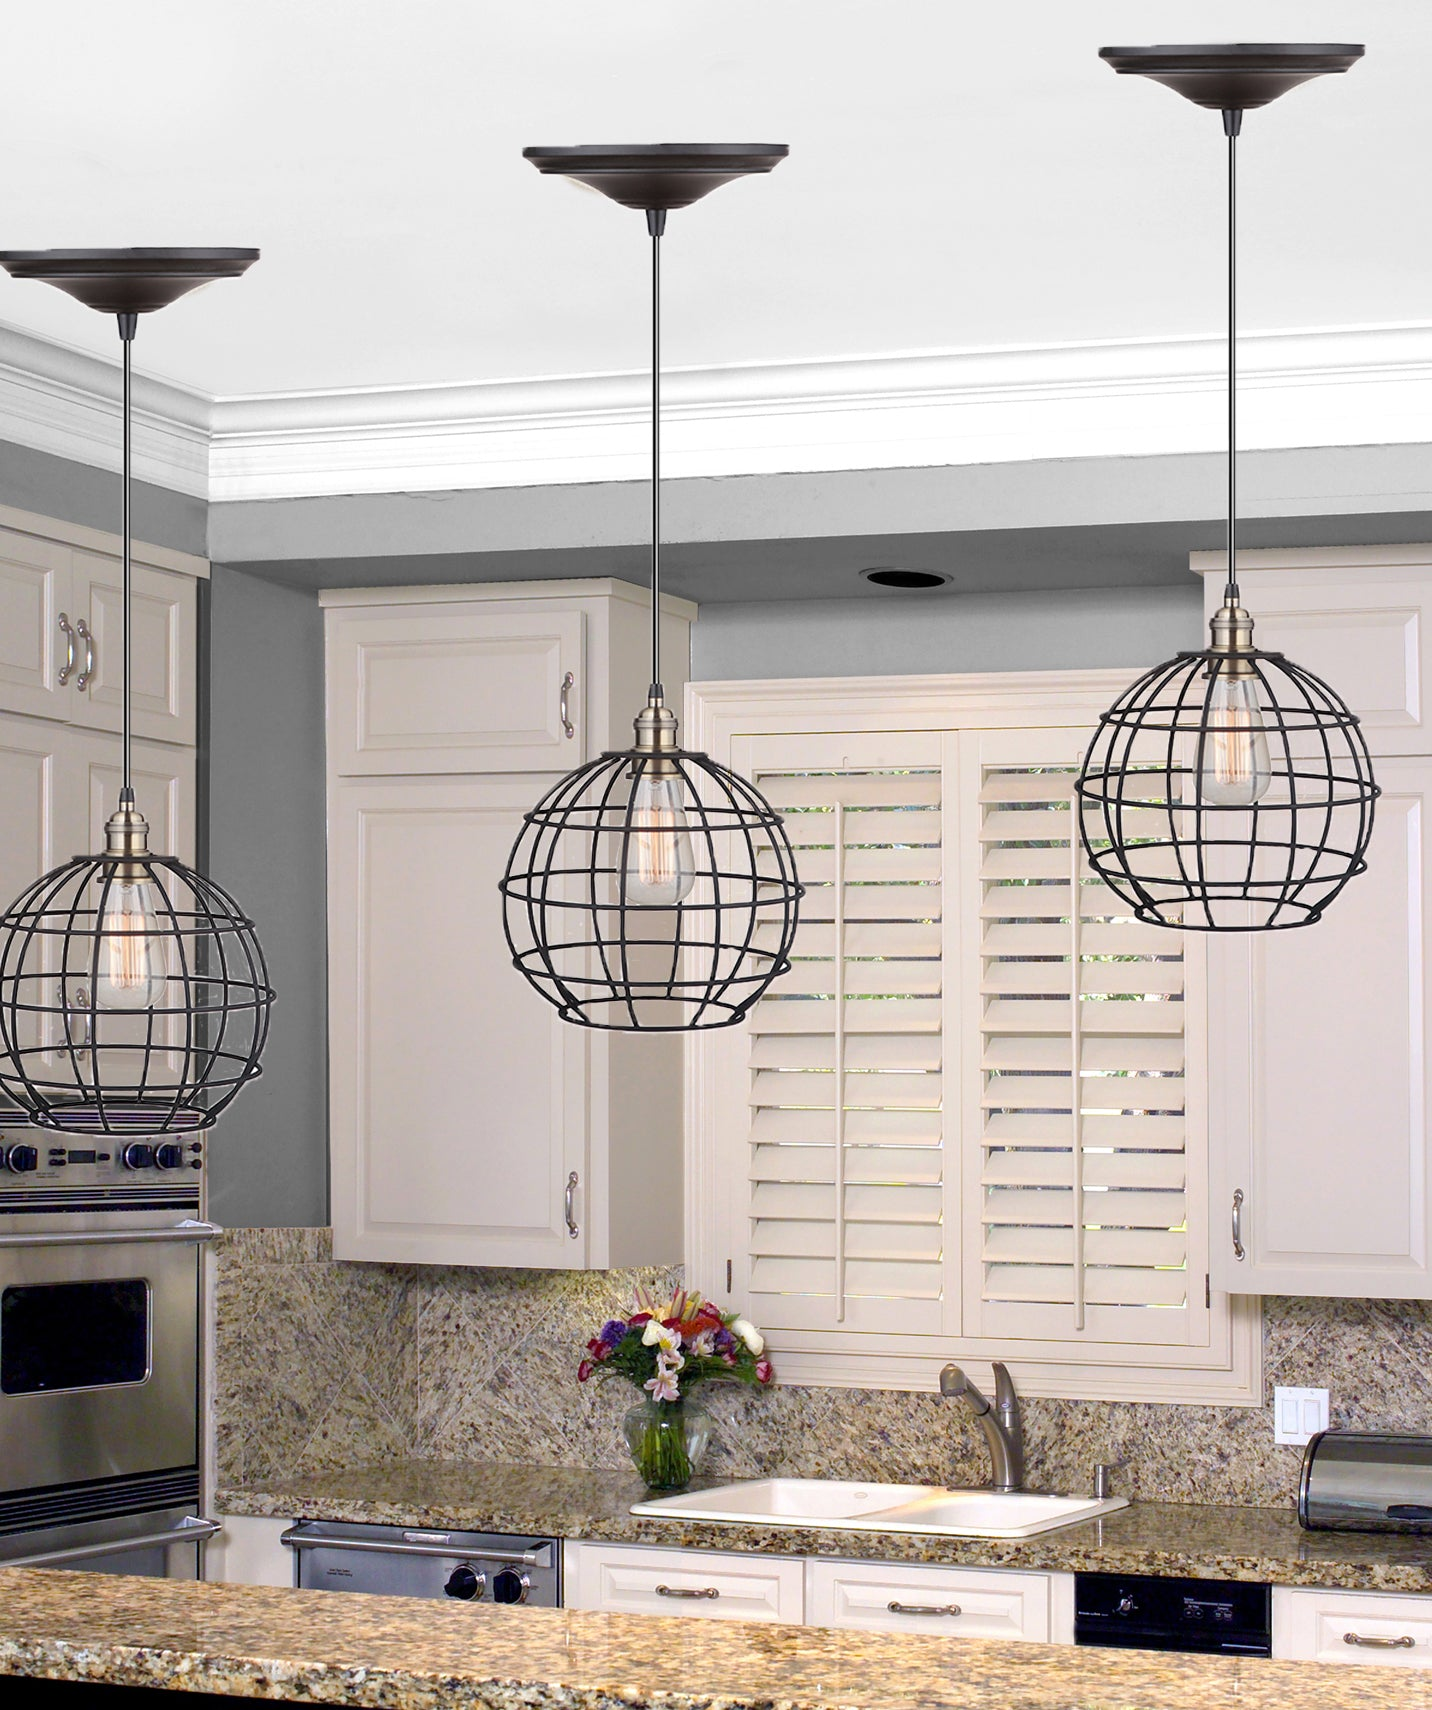 Instant Pendant Recessed Light Conversion Kit Brushed Bronze and Brass Globe Cage Shade PKN-9031-8303 - Worth Home Products